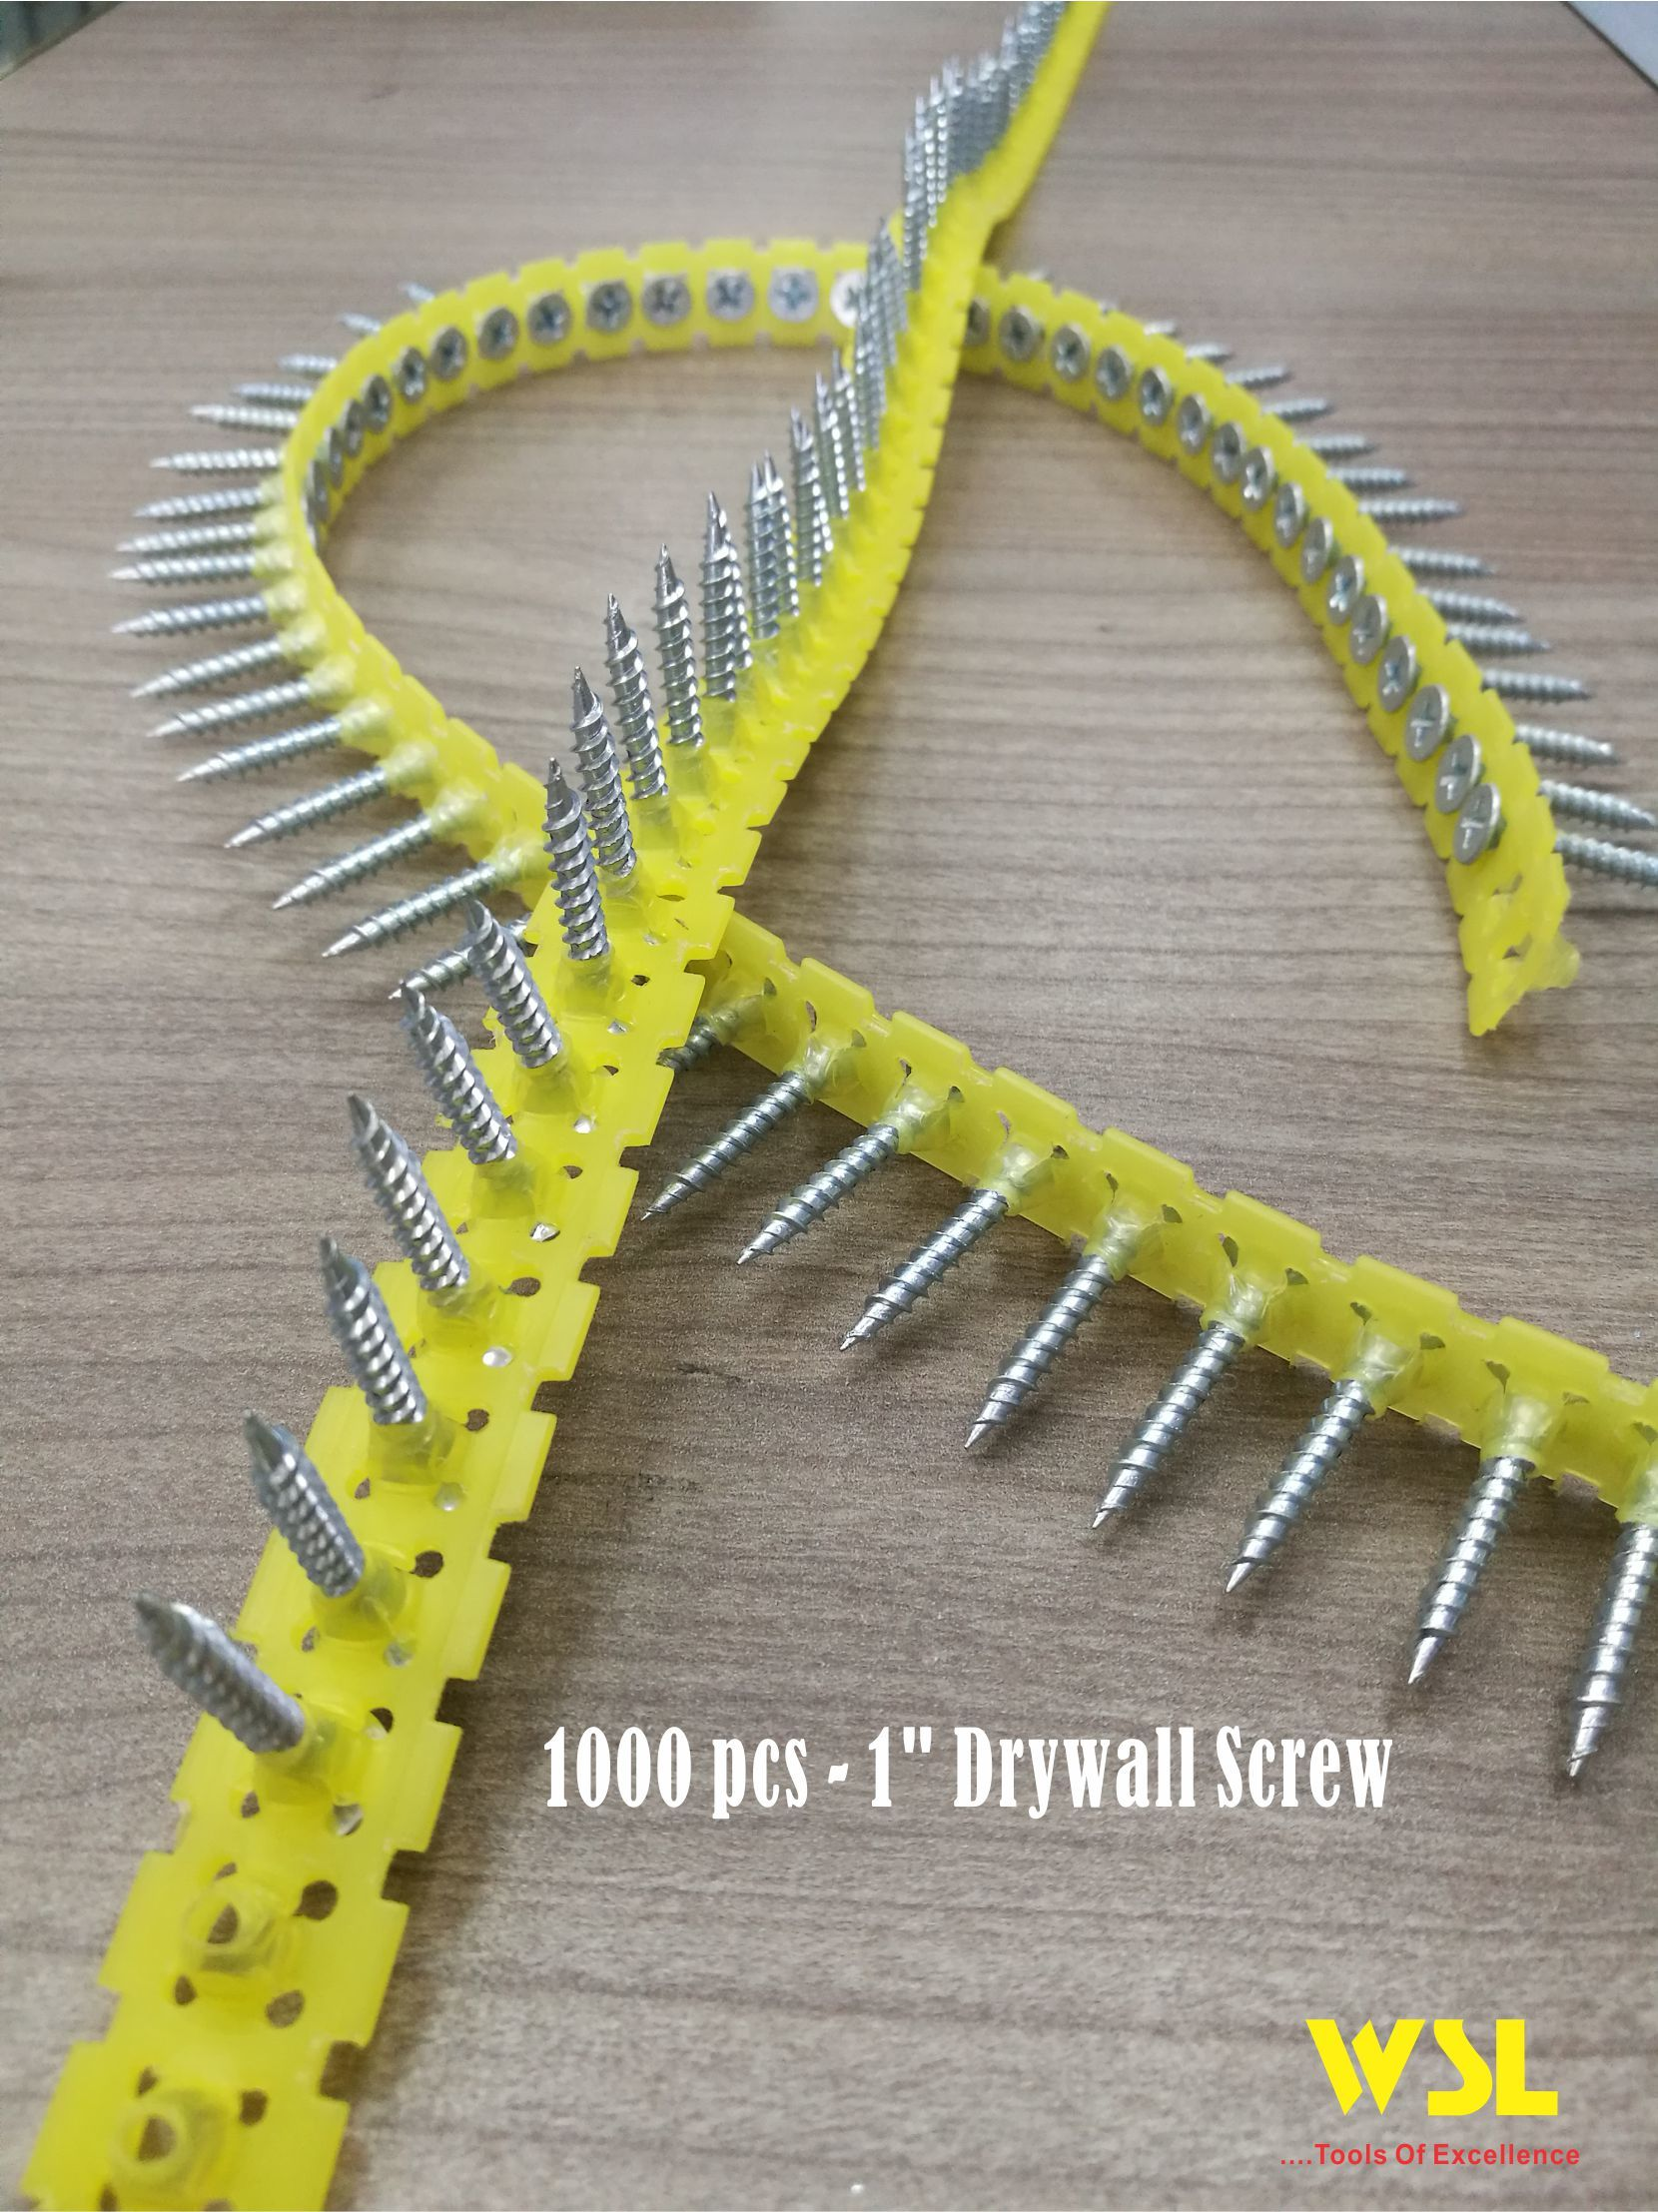 drywall screw.jpg